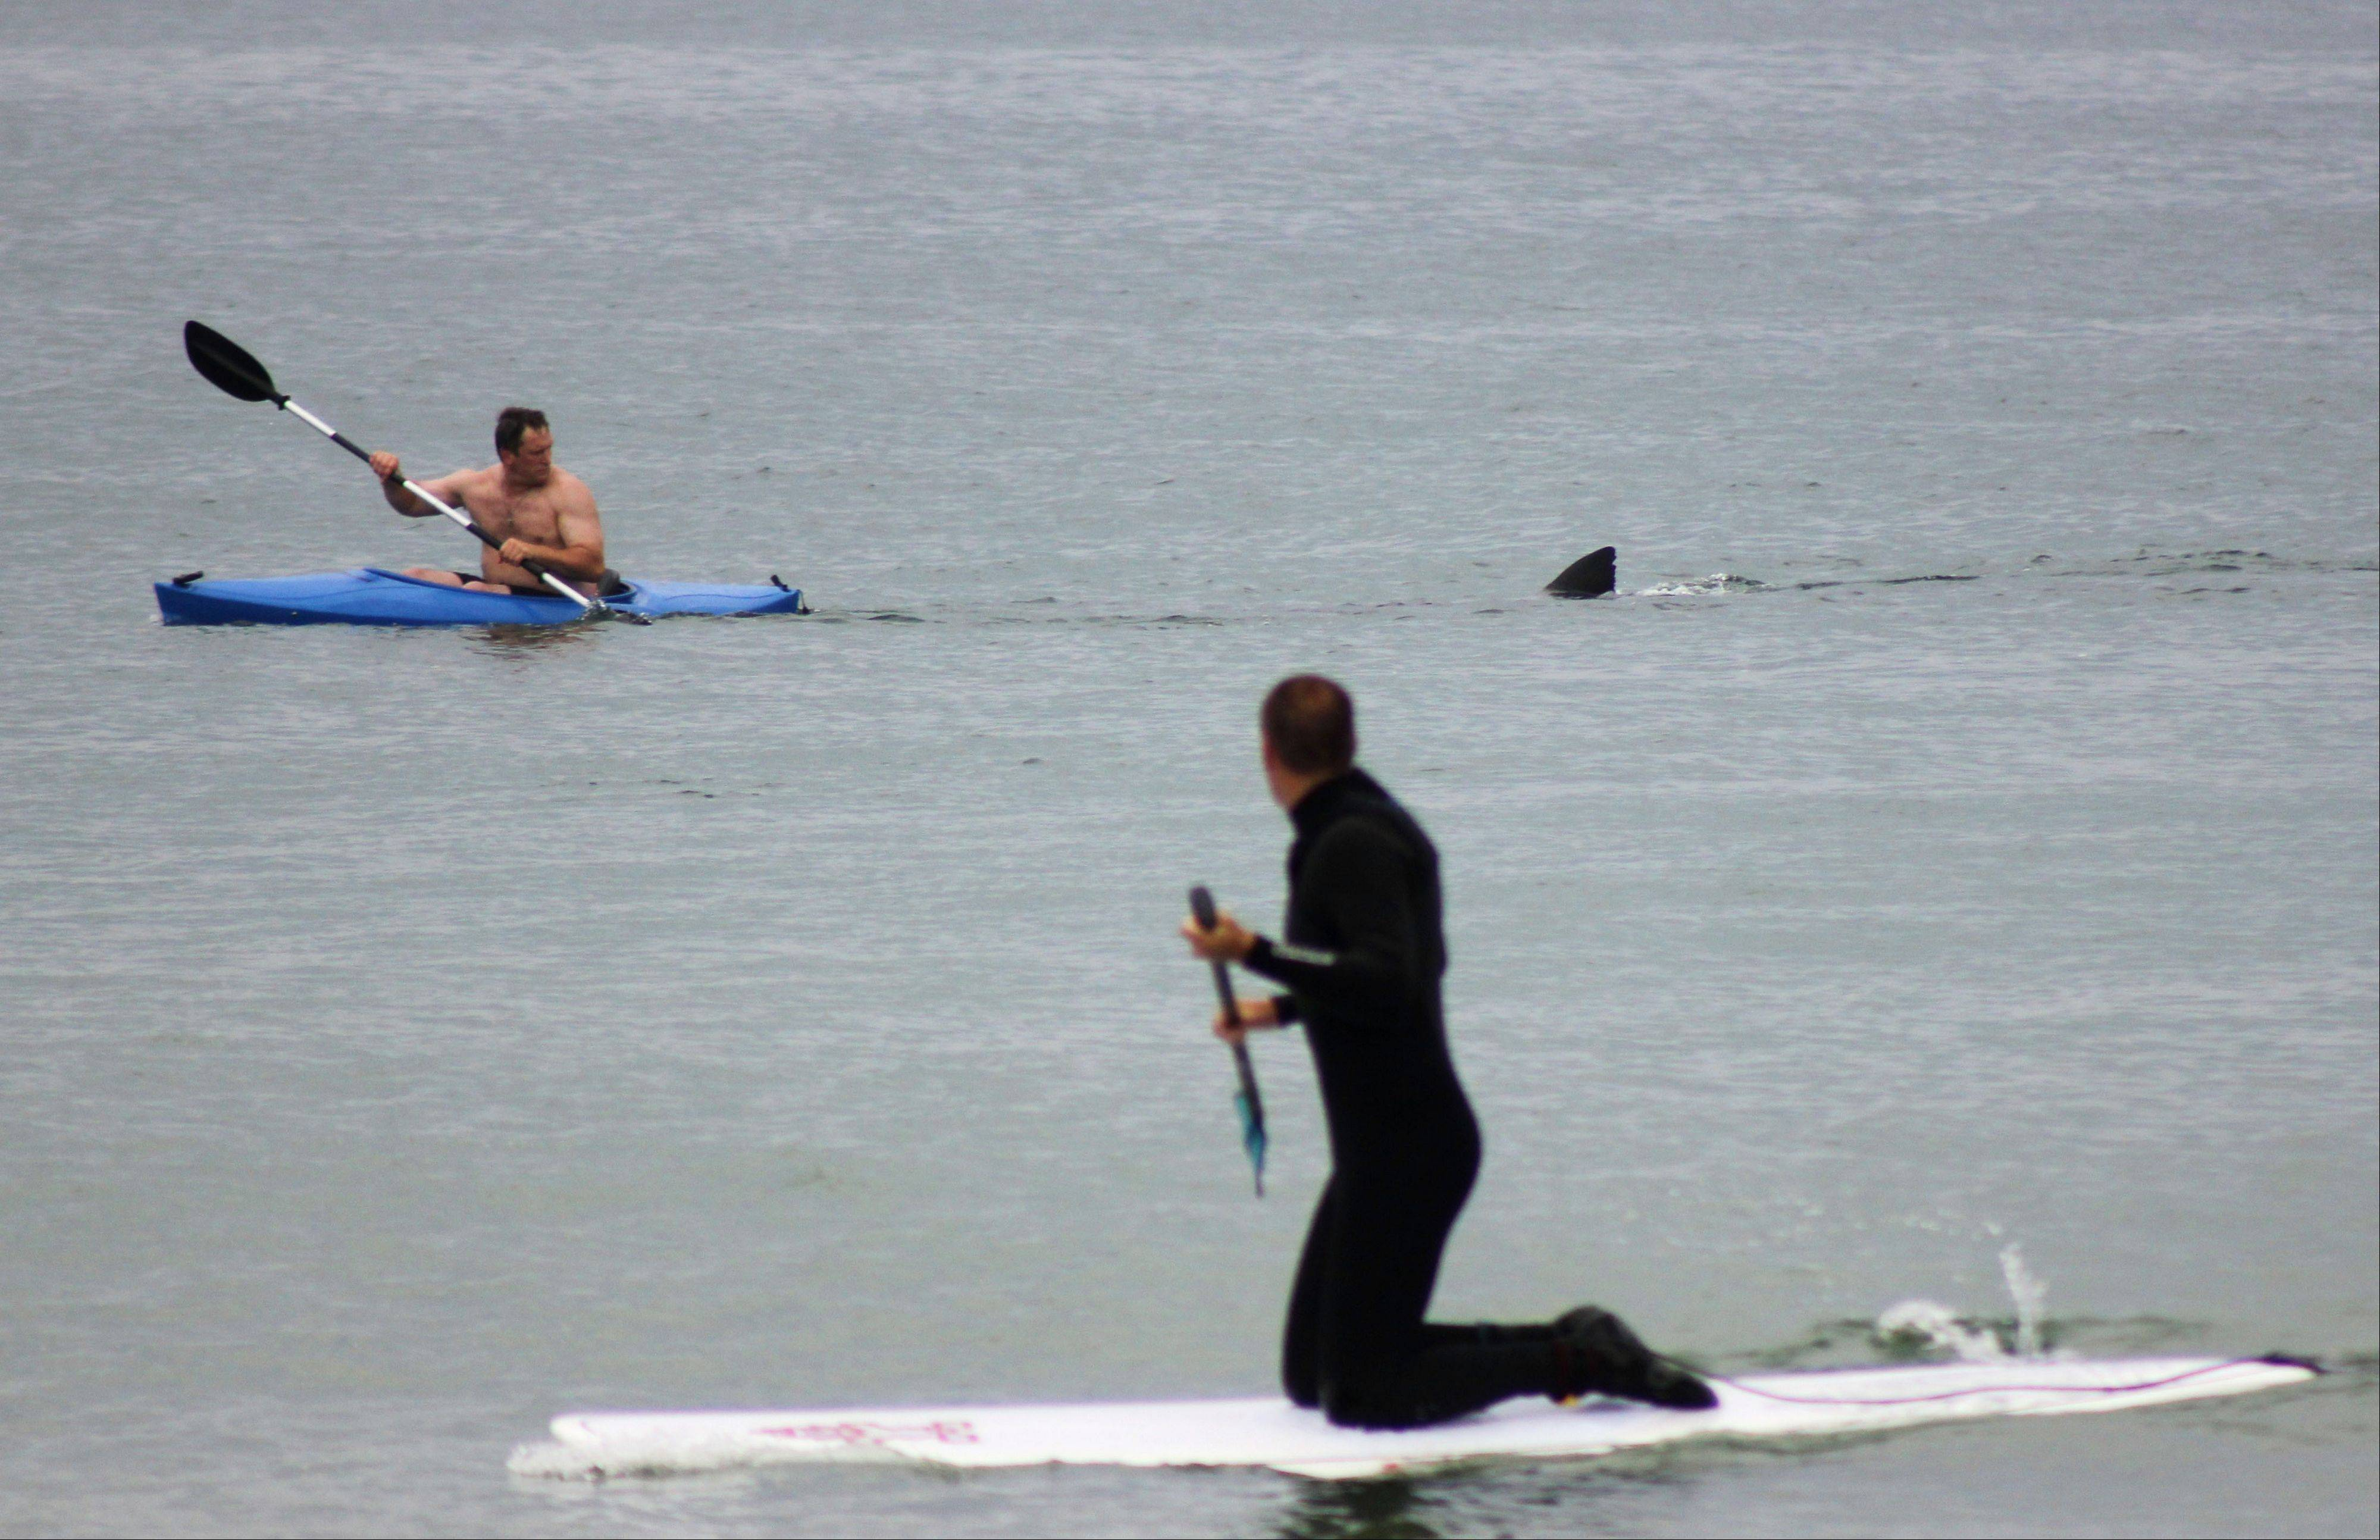 Walter Szulc Jr., in kayak at left, looks back at the dorsal fin of an approaching shark at Nauset Beach in Orleans, Mass. in Cape Cod on Saturday, July 7. The state's top shark expert says the fin likely belonged to a harmless basking shark, a giant fish that feeds on nothing but plankton.